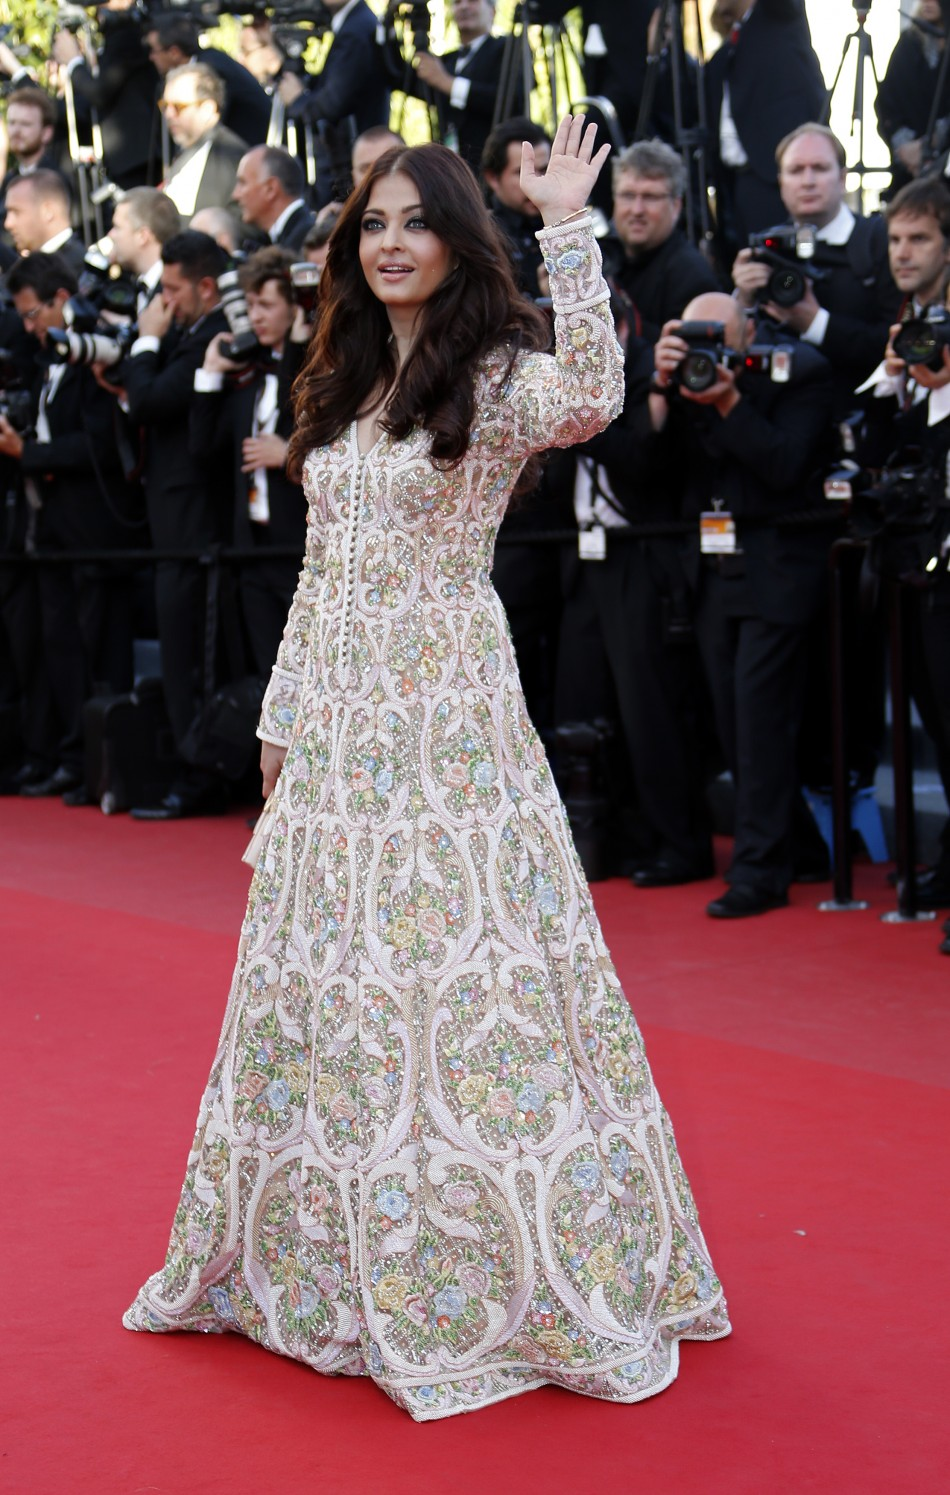 Indian actress Aishwarya Rai poses on the red carpet as she arrives for the screening of the film